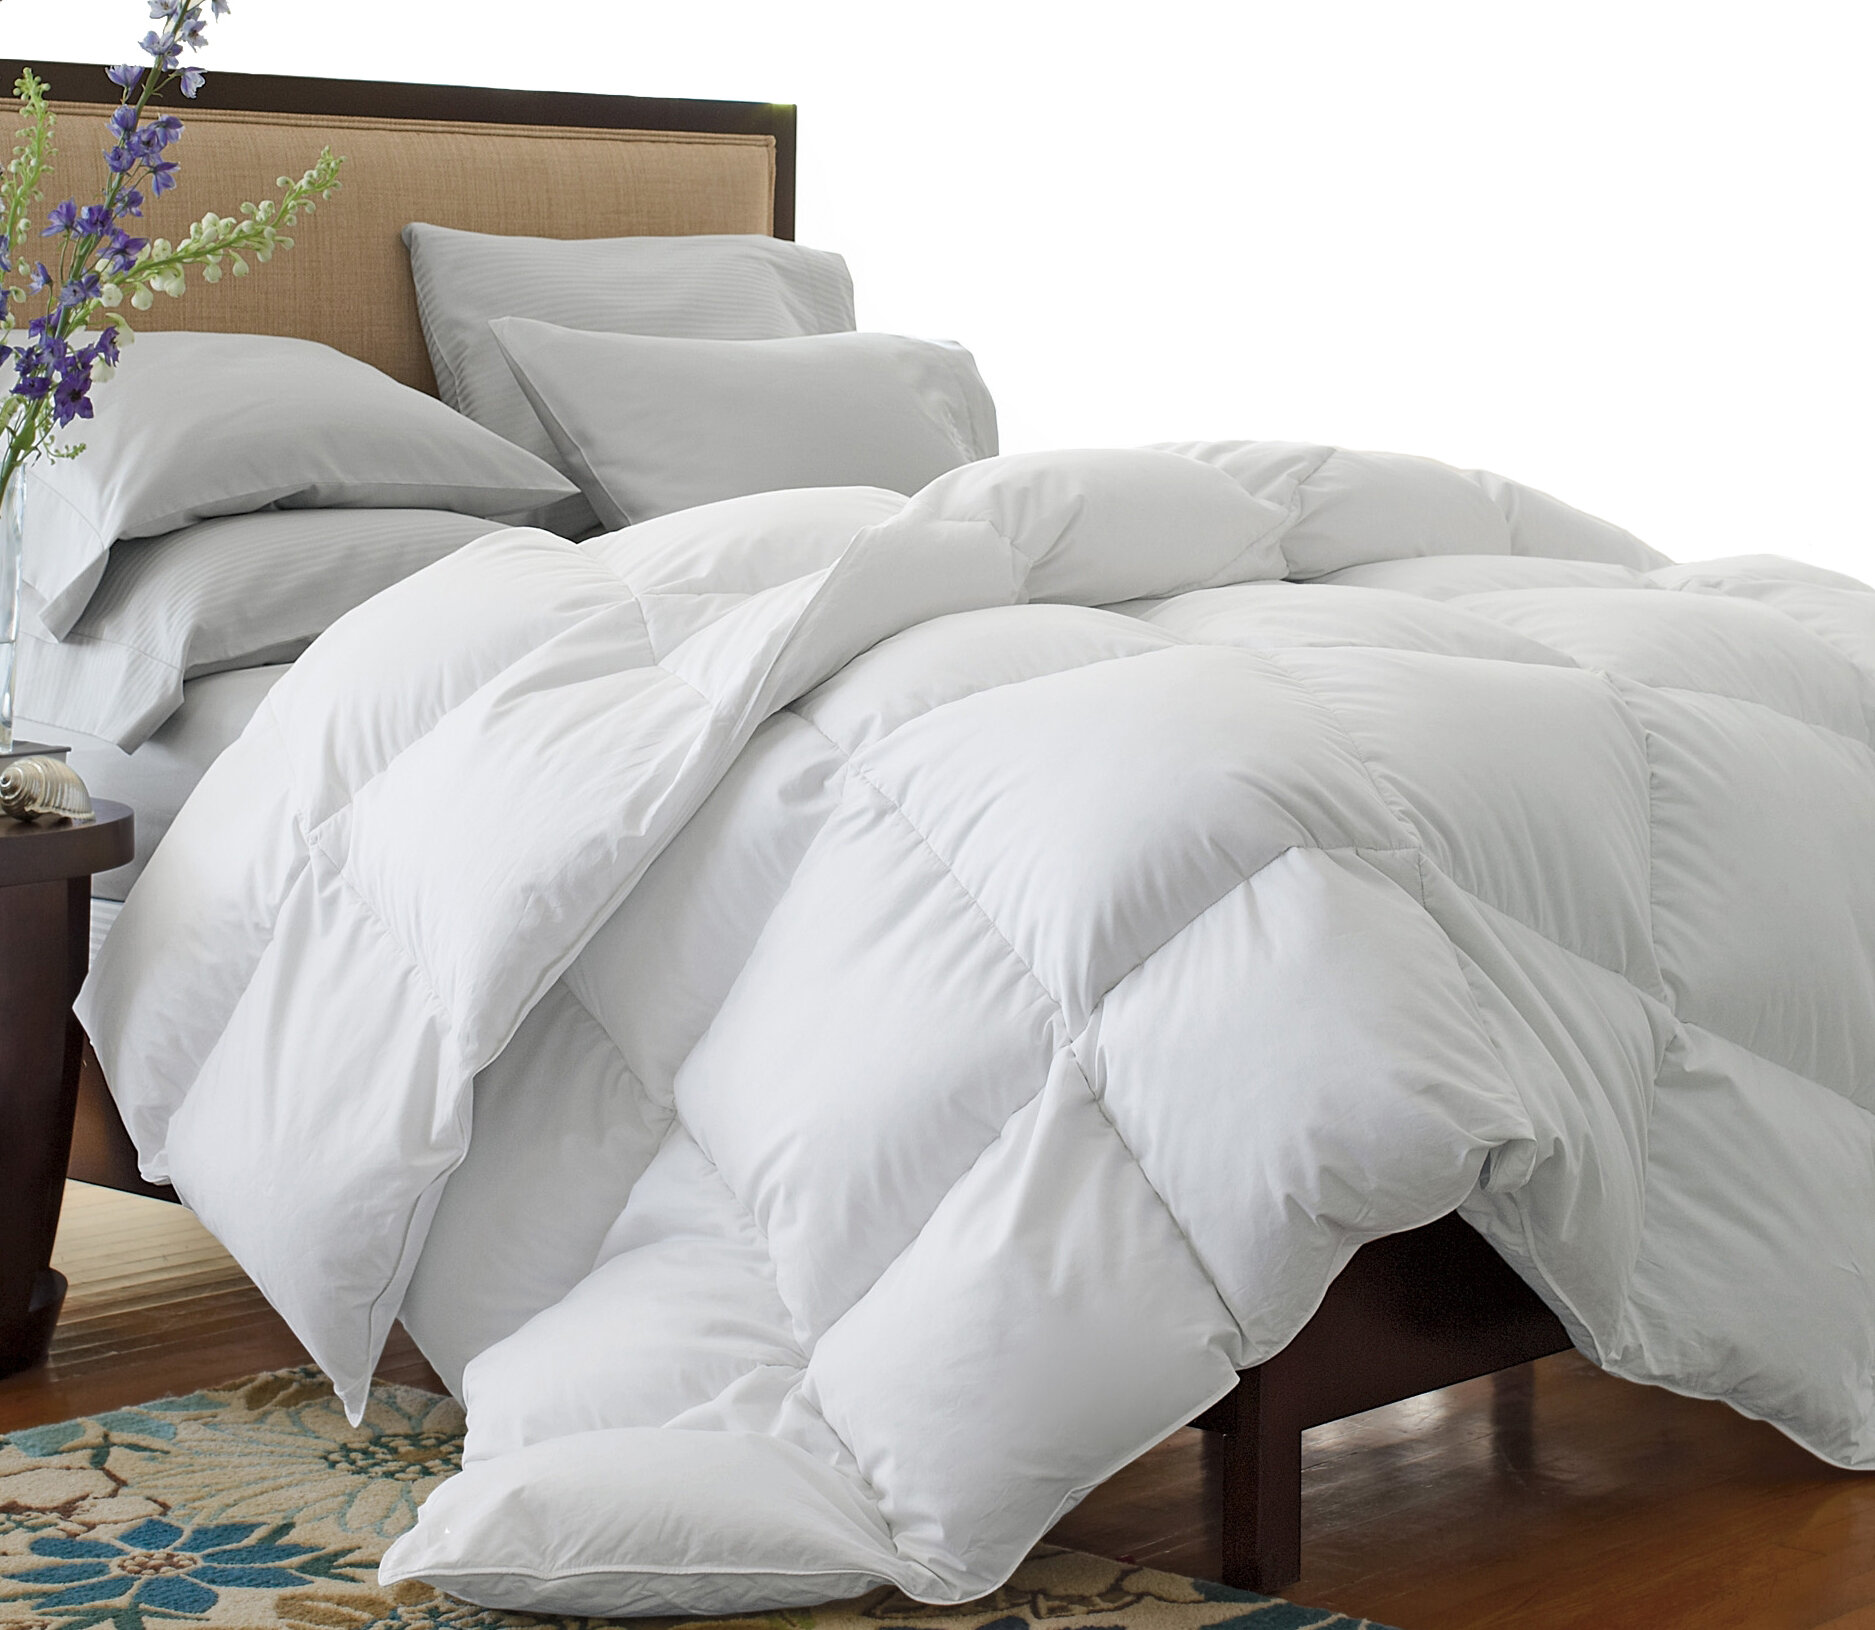 Picture of: Queen Bedding Up To 55 Off Through 12 26 Wayfair